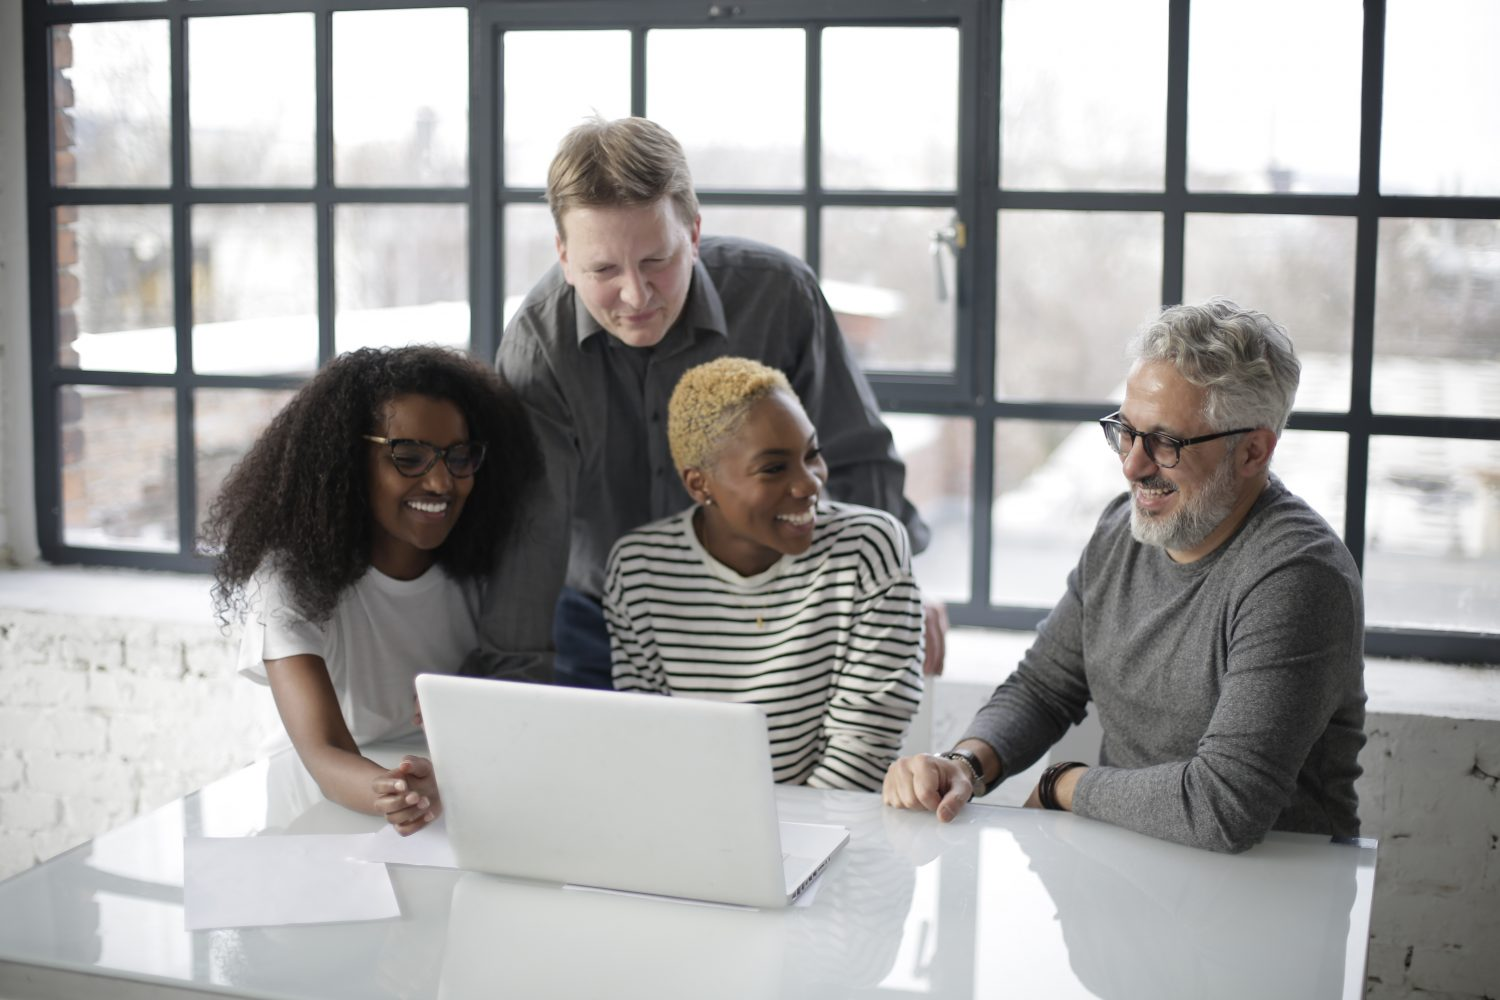 Four colleagues happily working together as a team. Photo by Andrea Piacquadio from Pexels